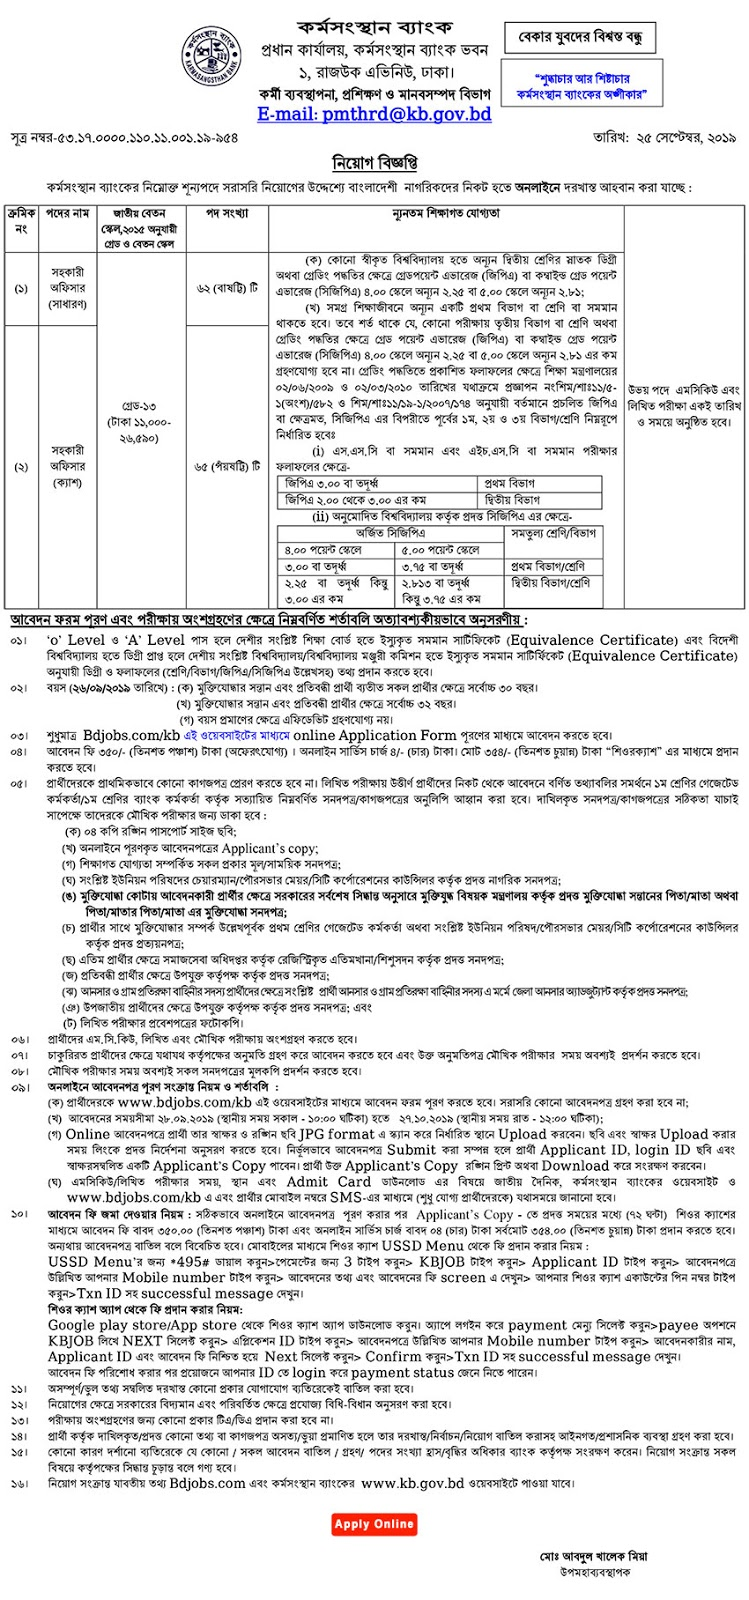 Karmasangsthan Bank Job Circular 2020